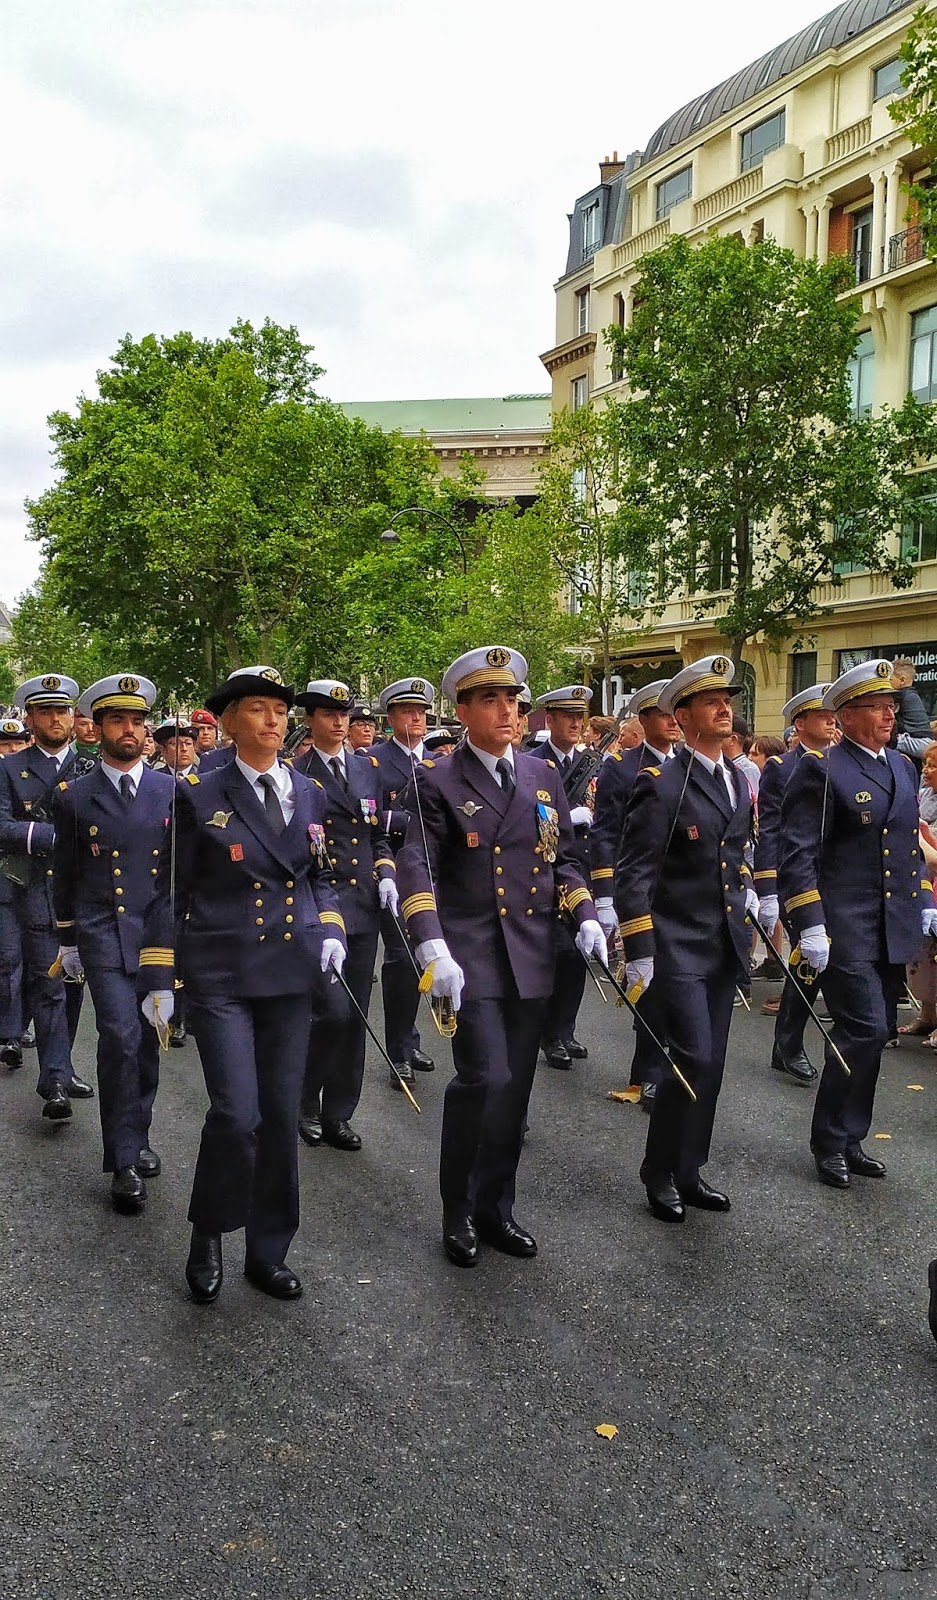 bastille-day-military-parade-paris-france